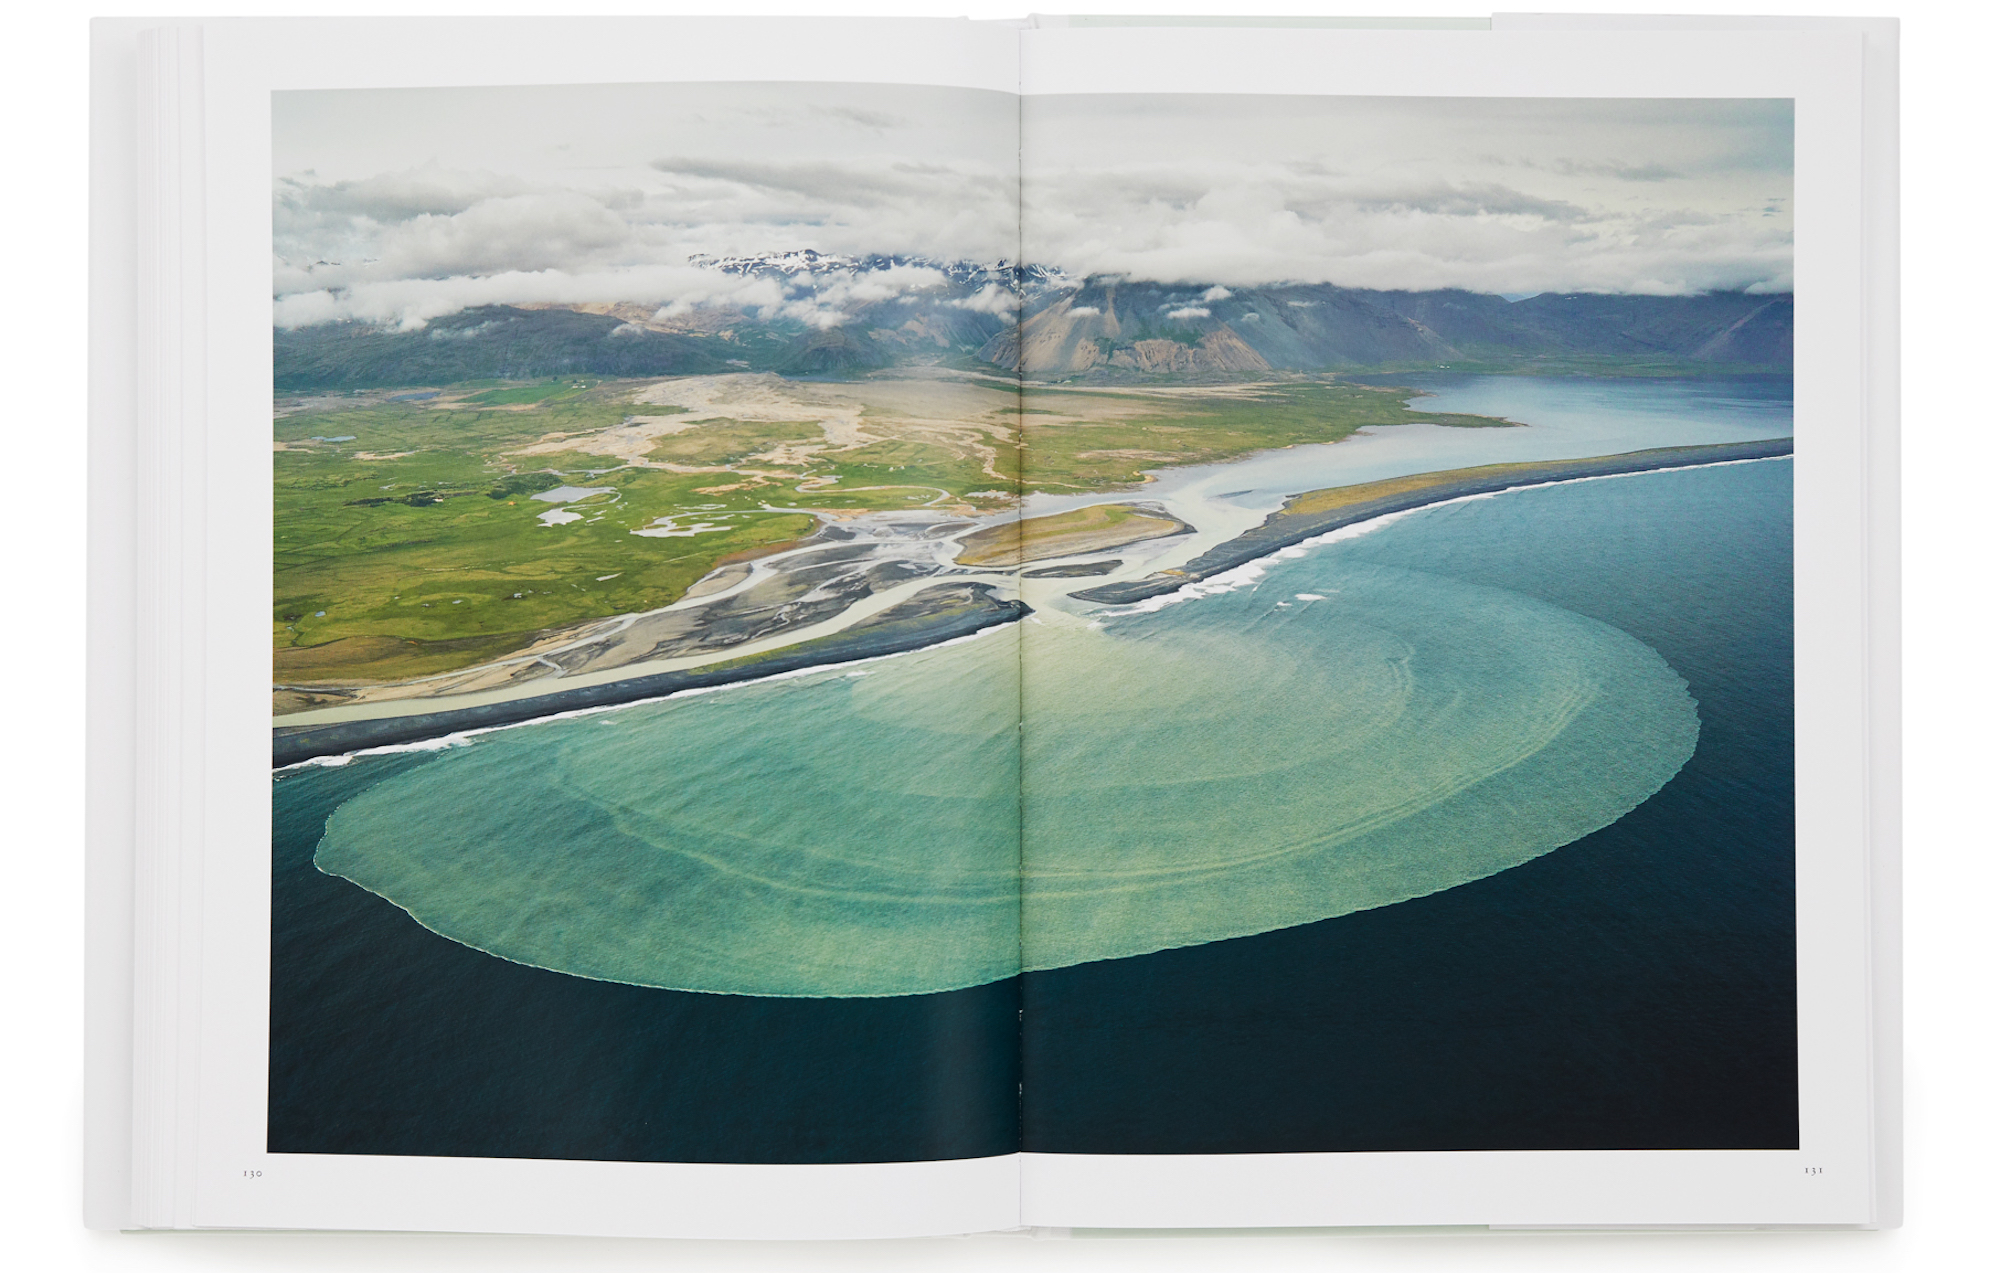 Renowned Photographer's Stunning Images Document Iceland's Glacial Rivers